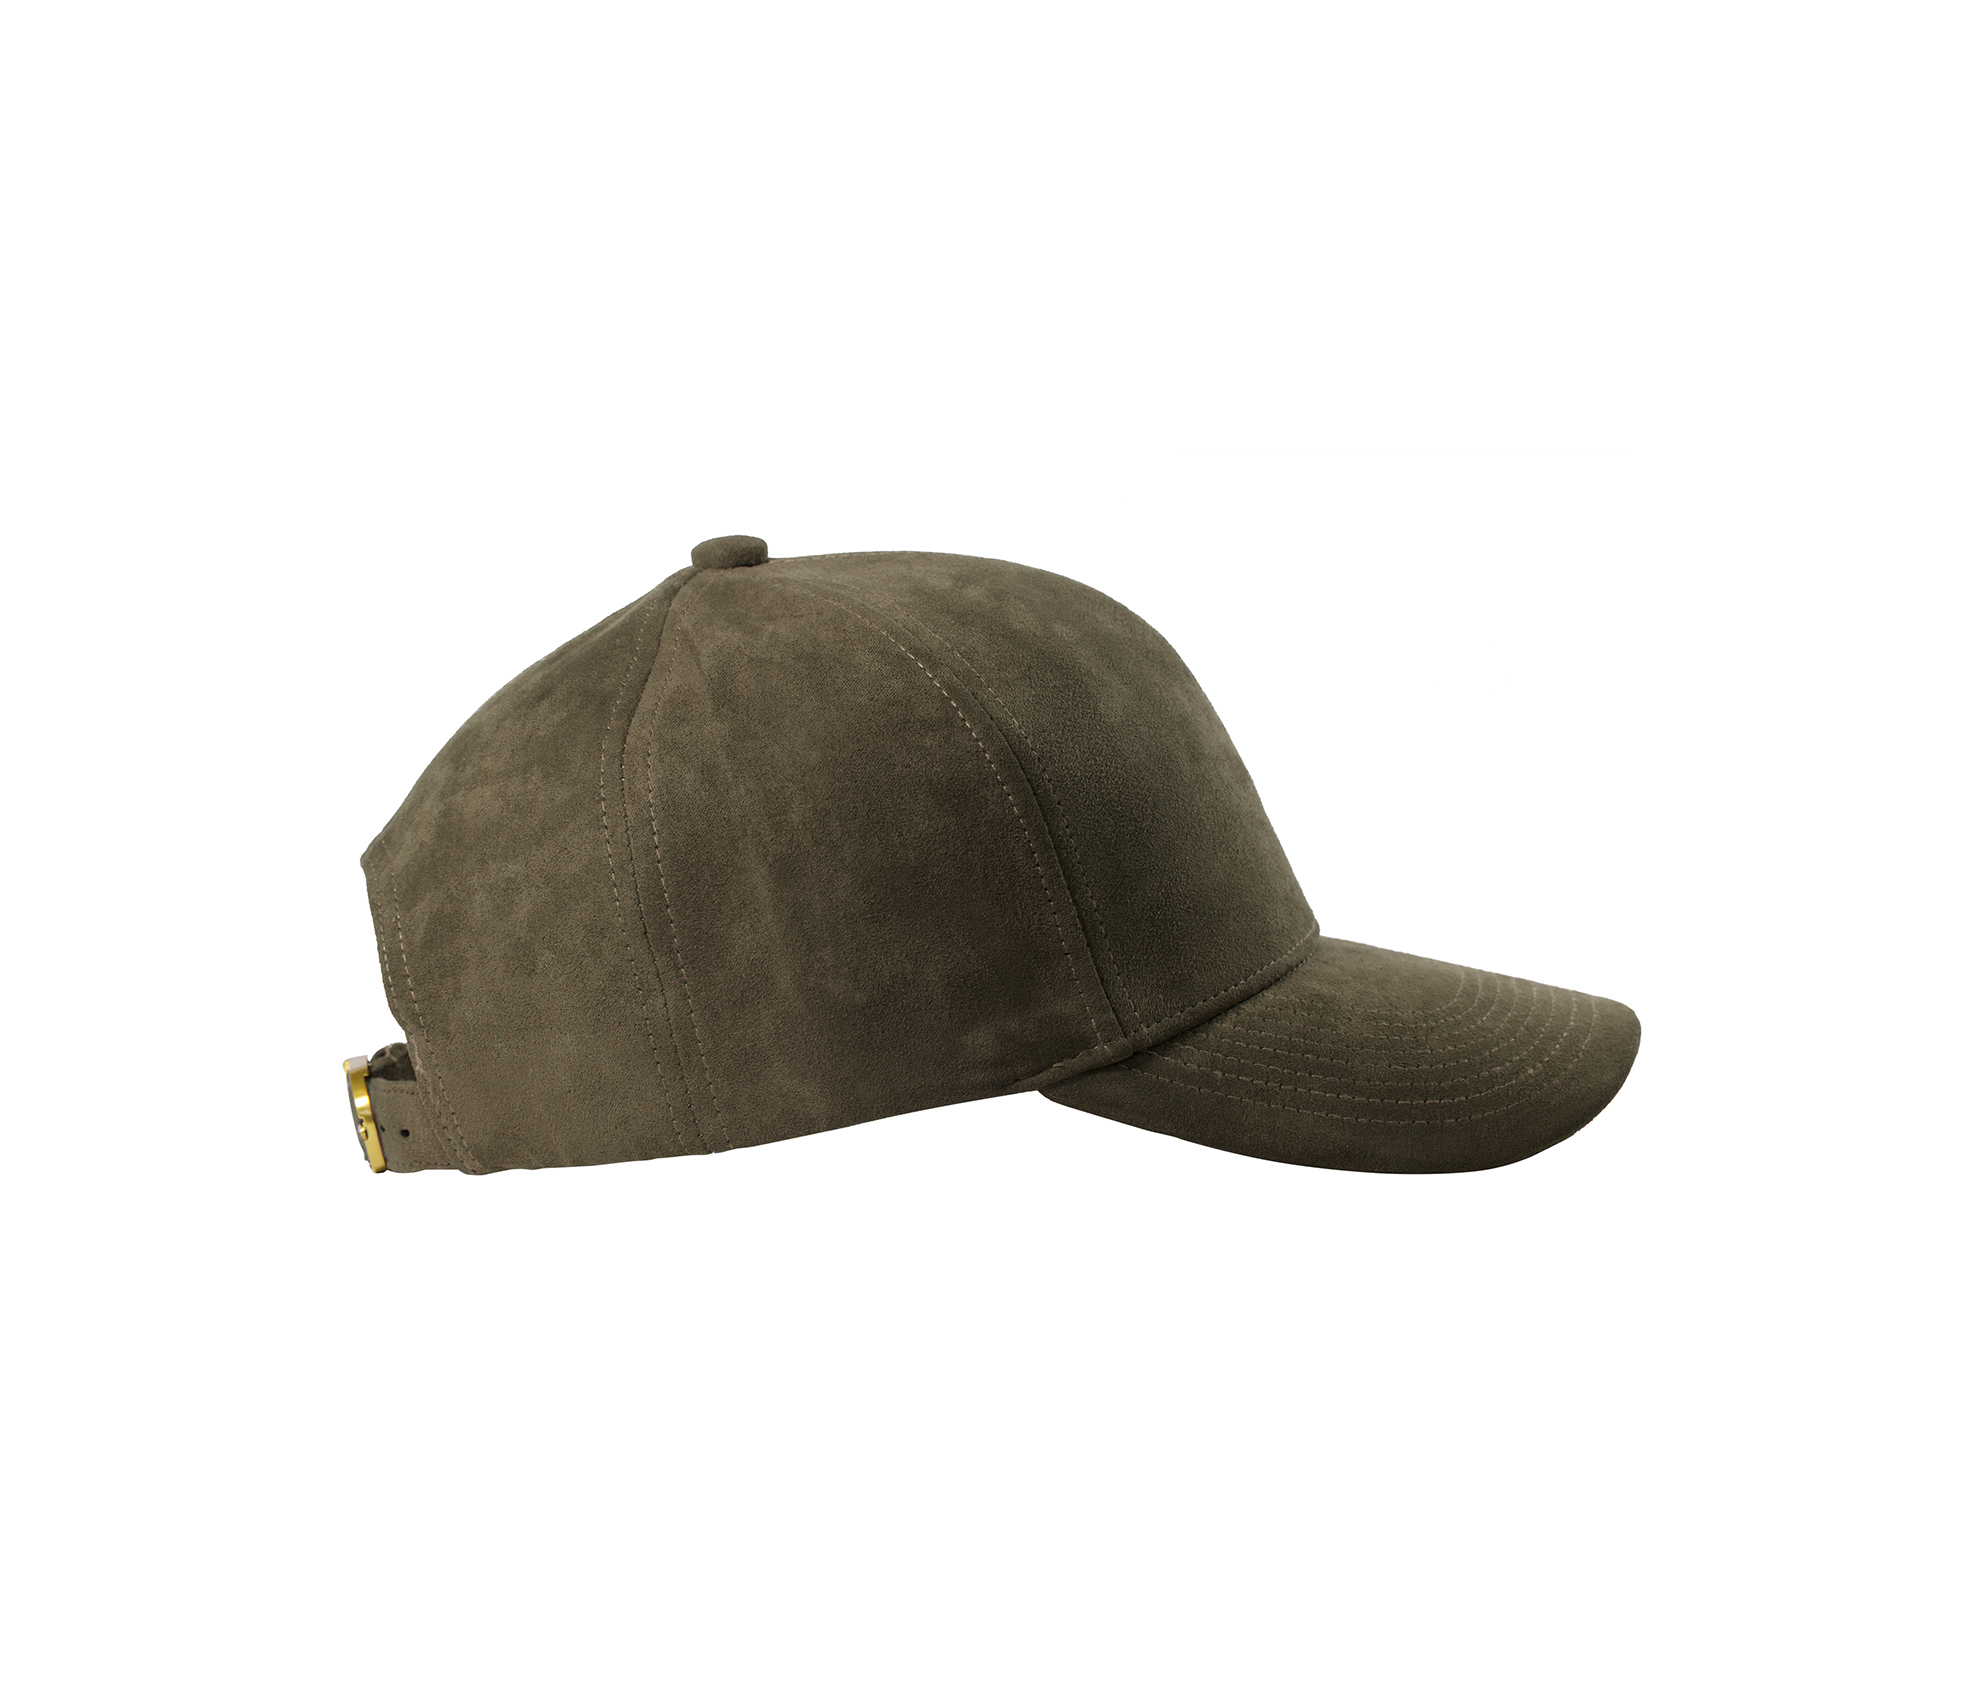 BASEBALL CAP TAUPE SUEDE GOLD SIDE